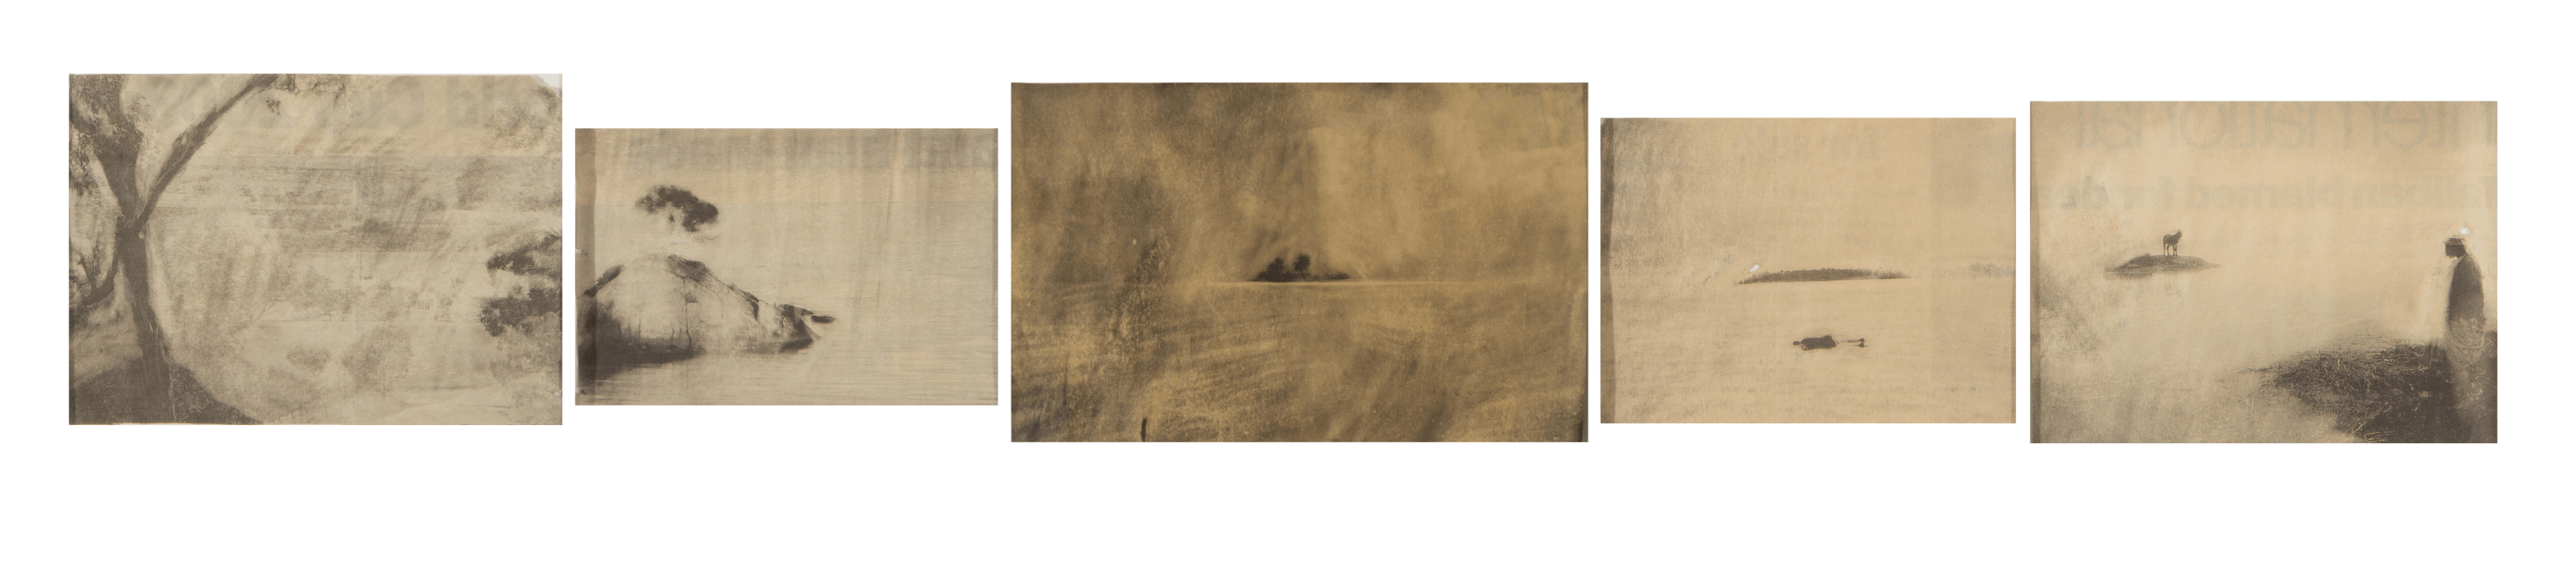 Matt Bryans Untitled (seascape with islands), 2003 Rubbed out newspaper cuttings set of 5 works on paper